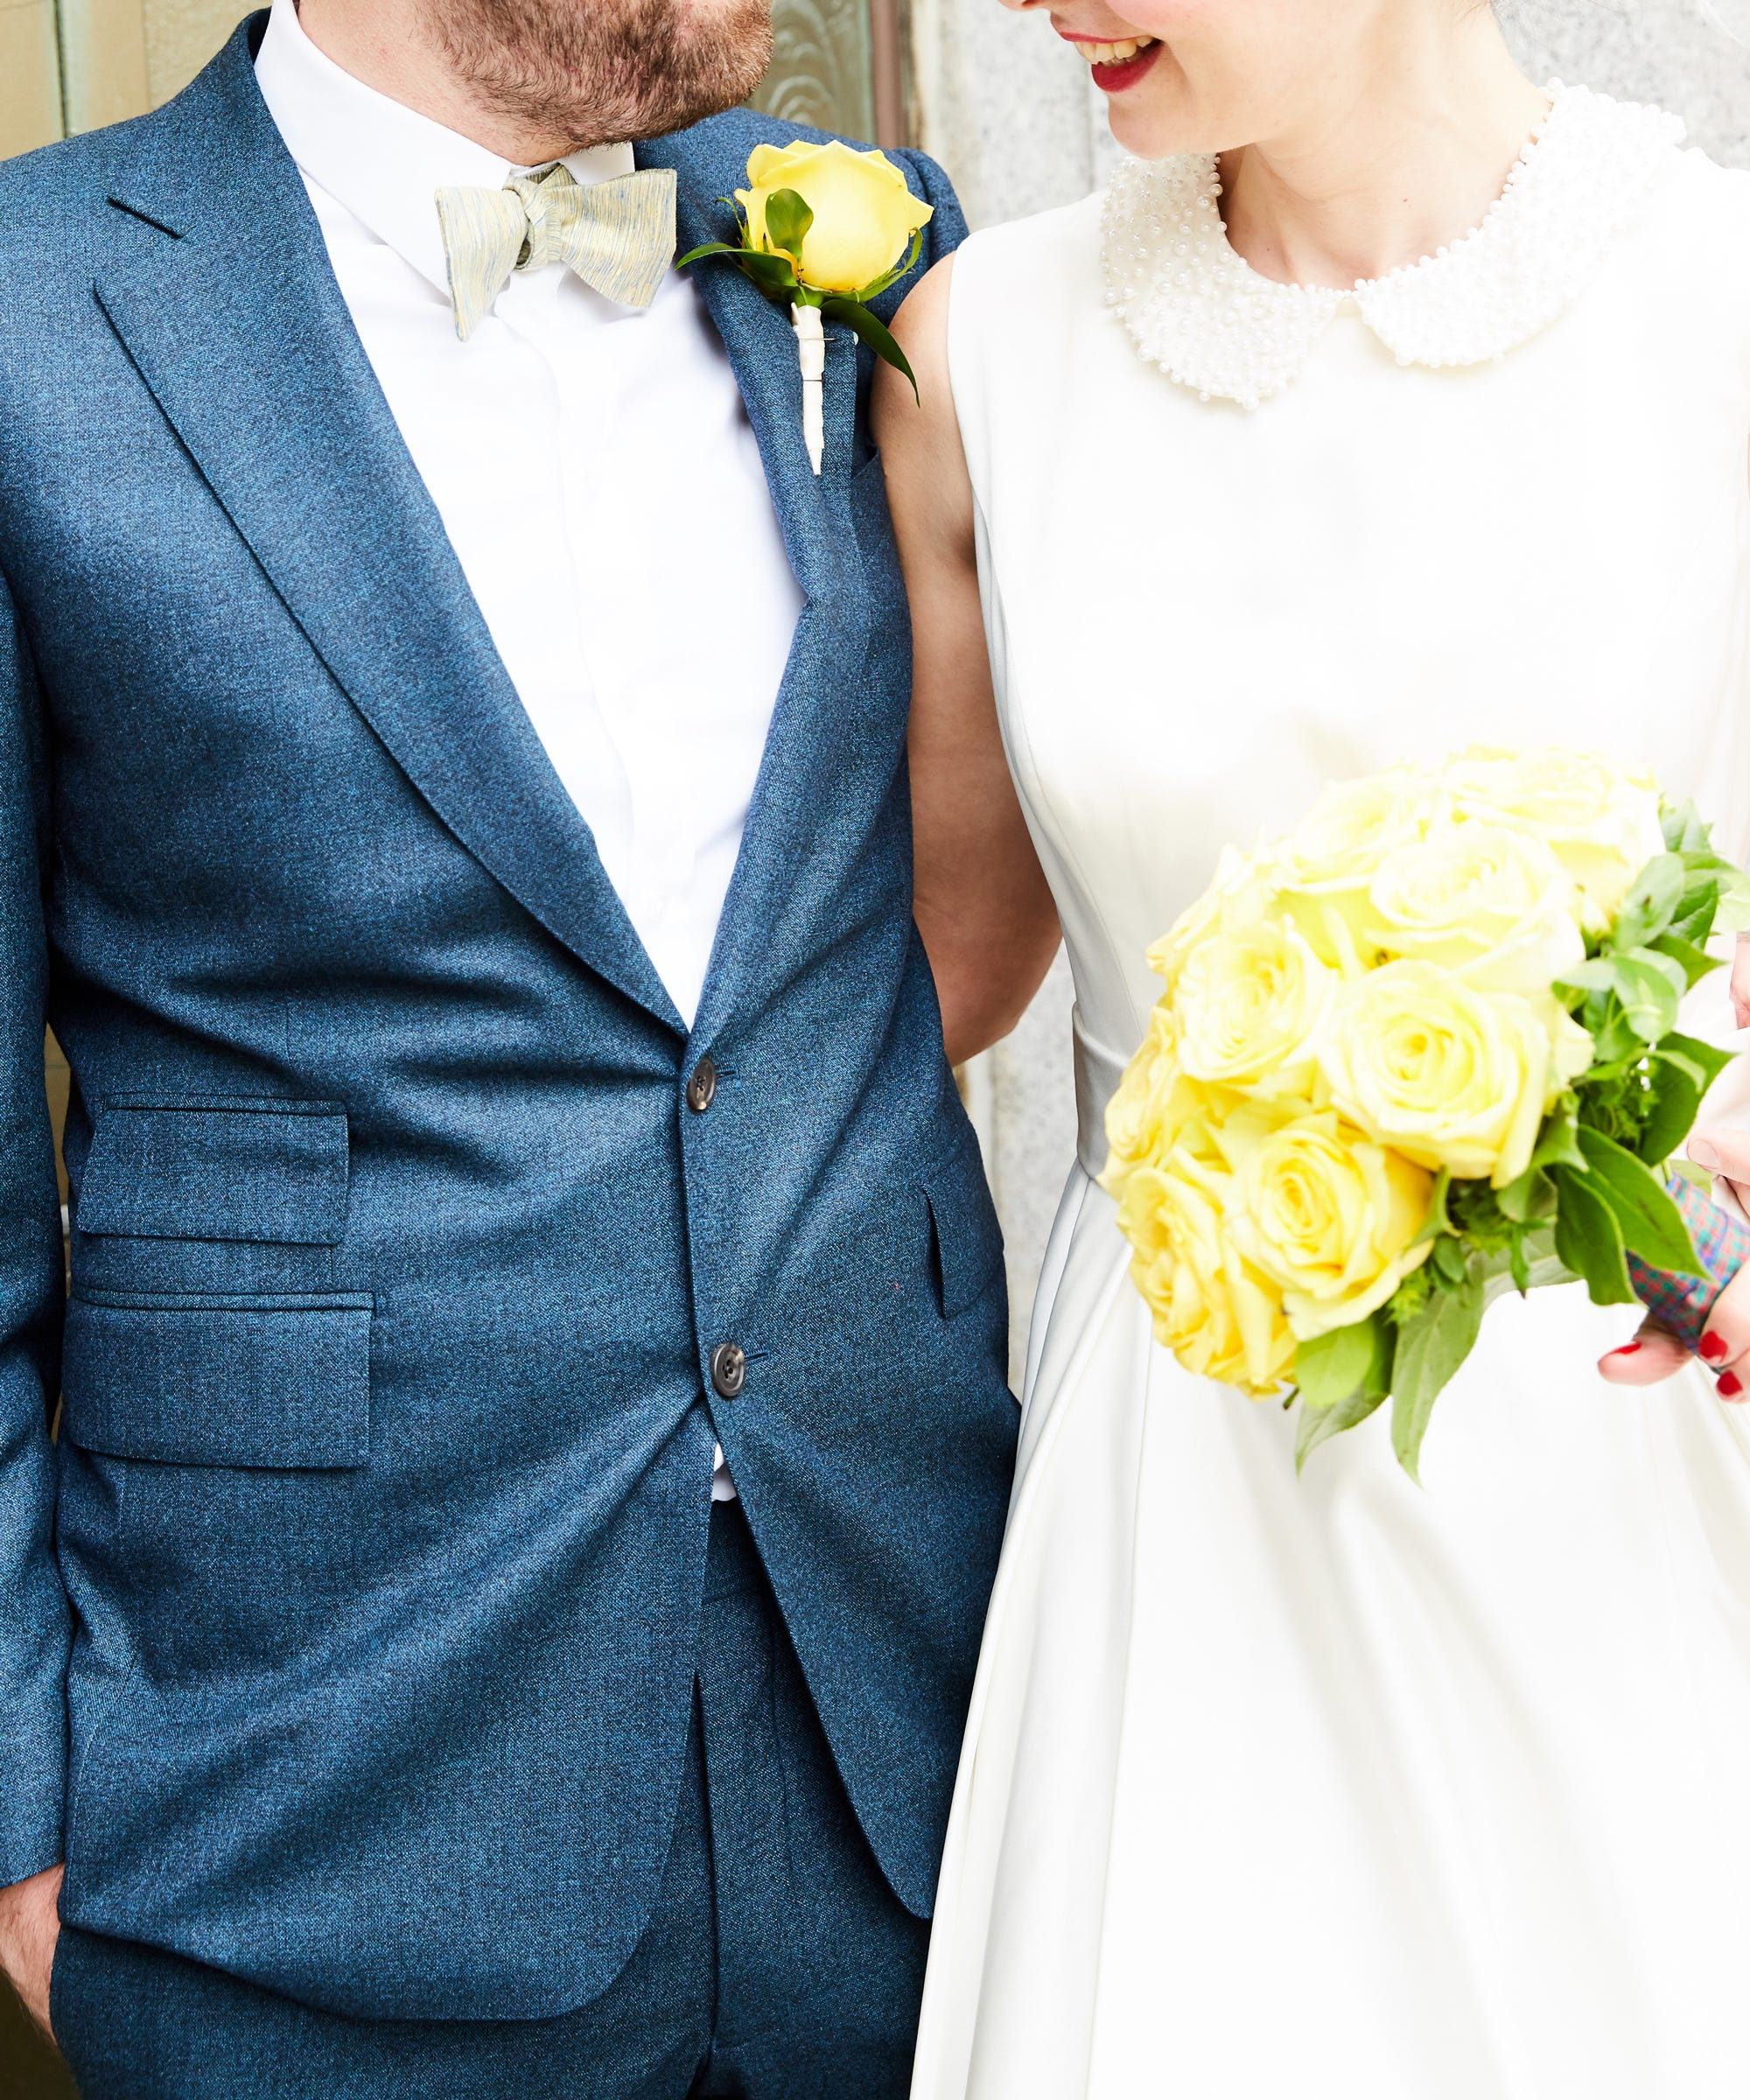 What To Know Before Planning A Wedding